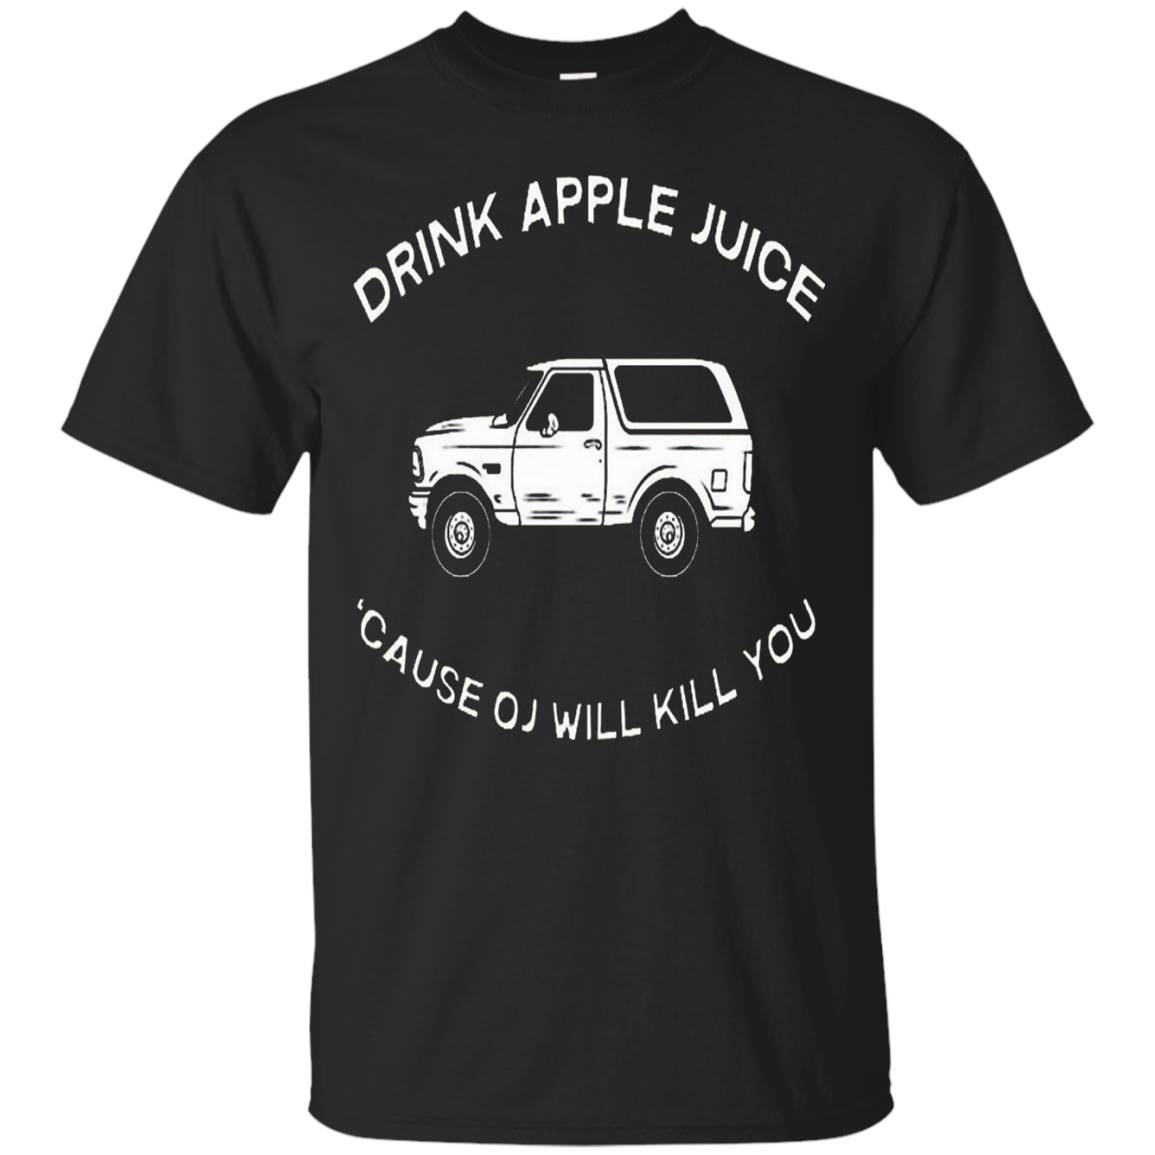 Drink apple juice cause OJ will kill you t-shirt